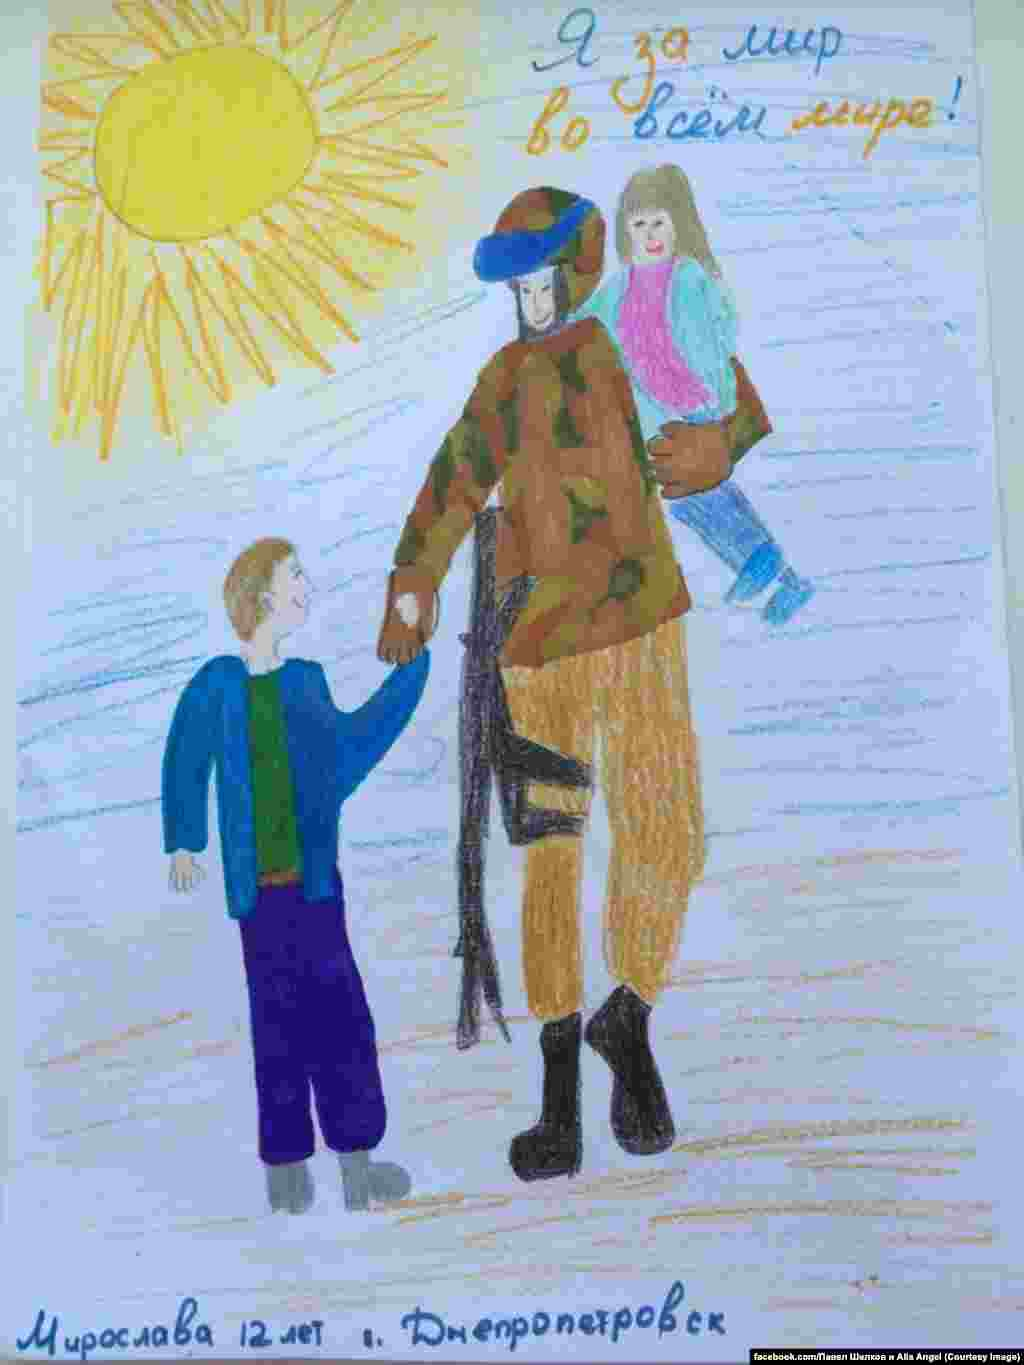 """I'm for peace in the whole world,"" says 12-year-old Myroslava from Dnipropetrovsk in this drawing."